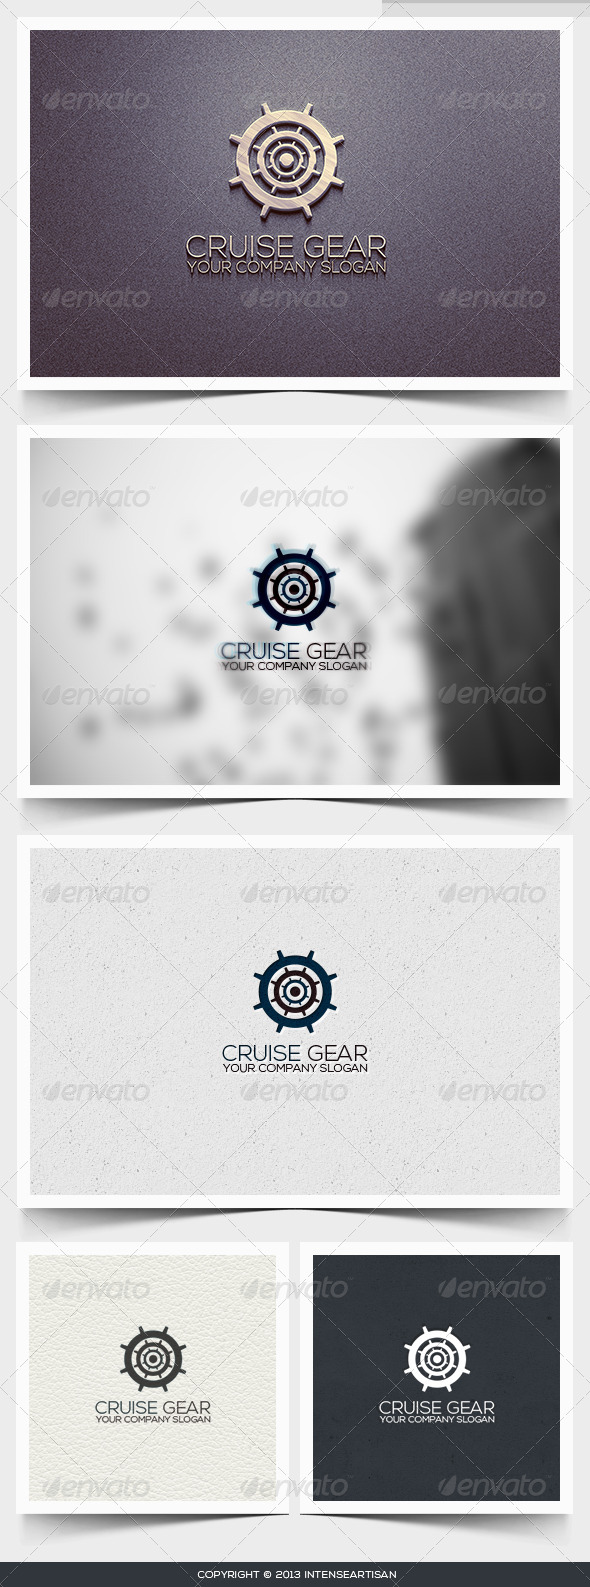 Cruise Gear Logo Template - Objects Logo Templates